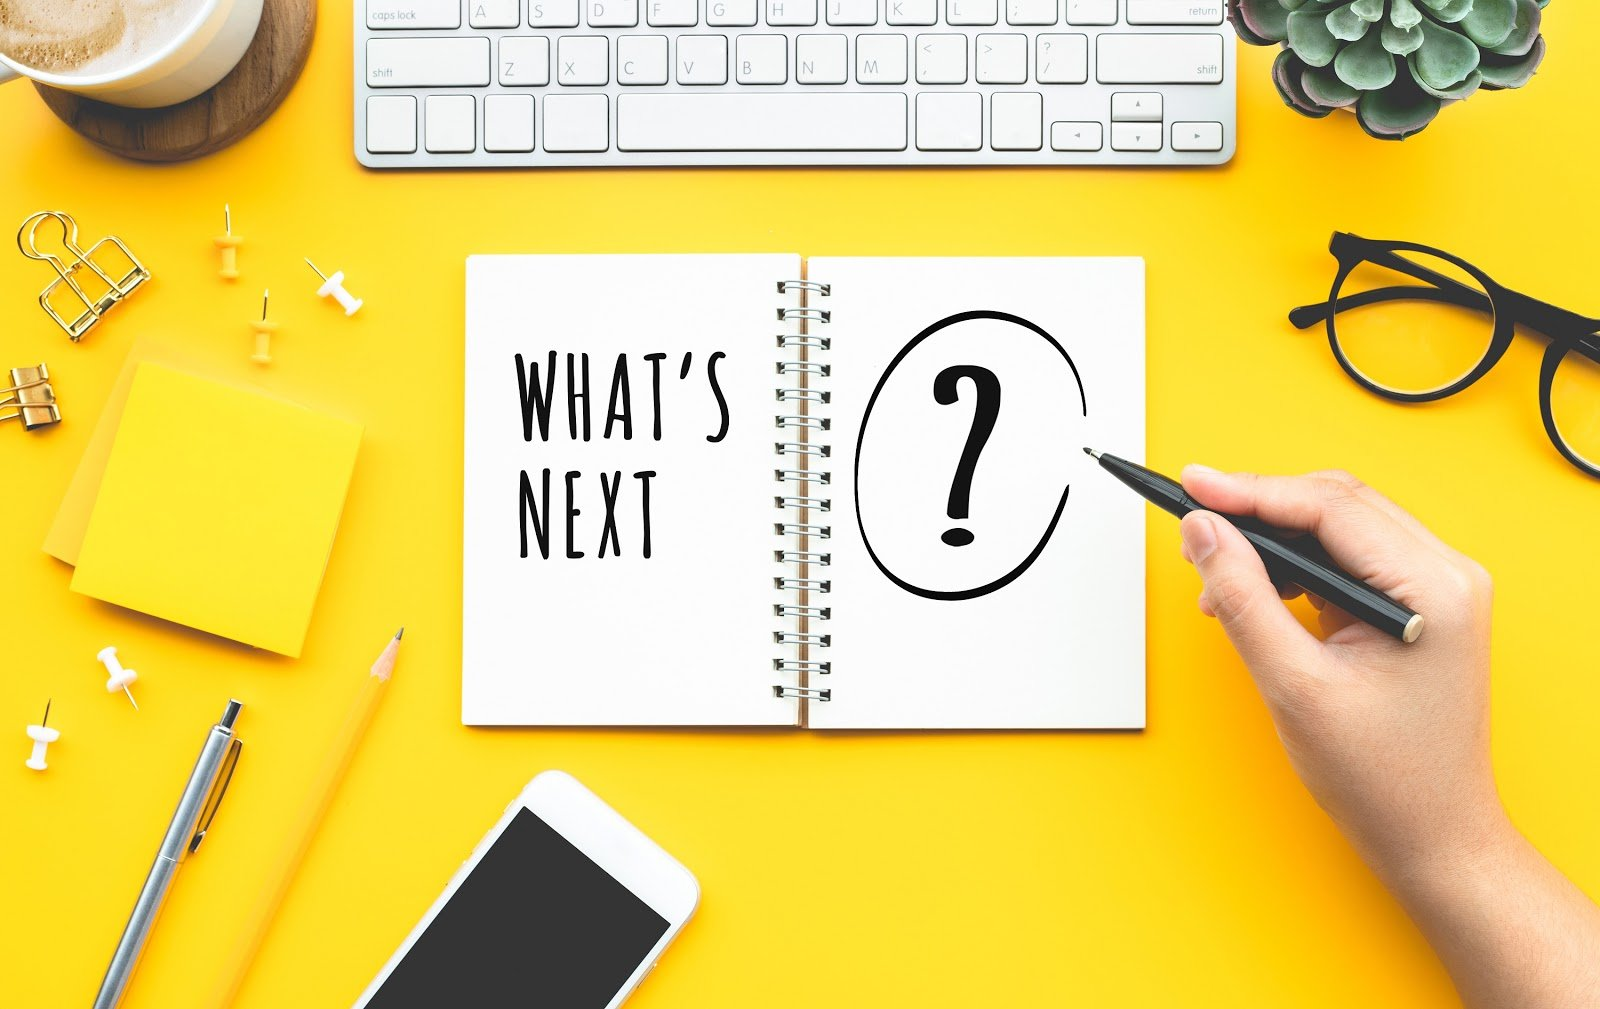 """A keyboard, glasses, a cell phone, sticky notes, thumbtacks, and other items surround a notebook reading """"What's Next?"""" on a bright yellow background."""